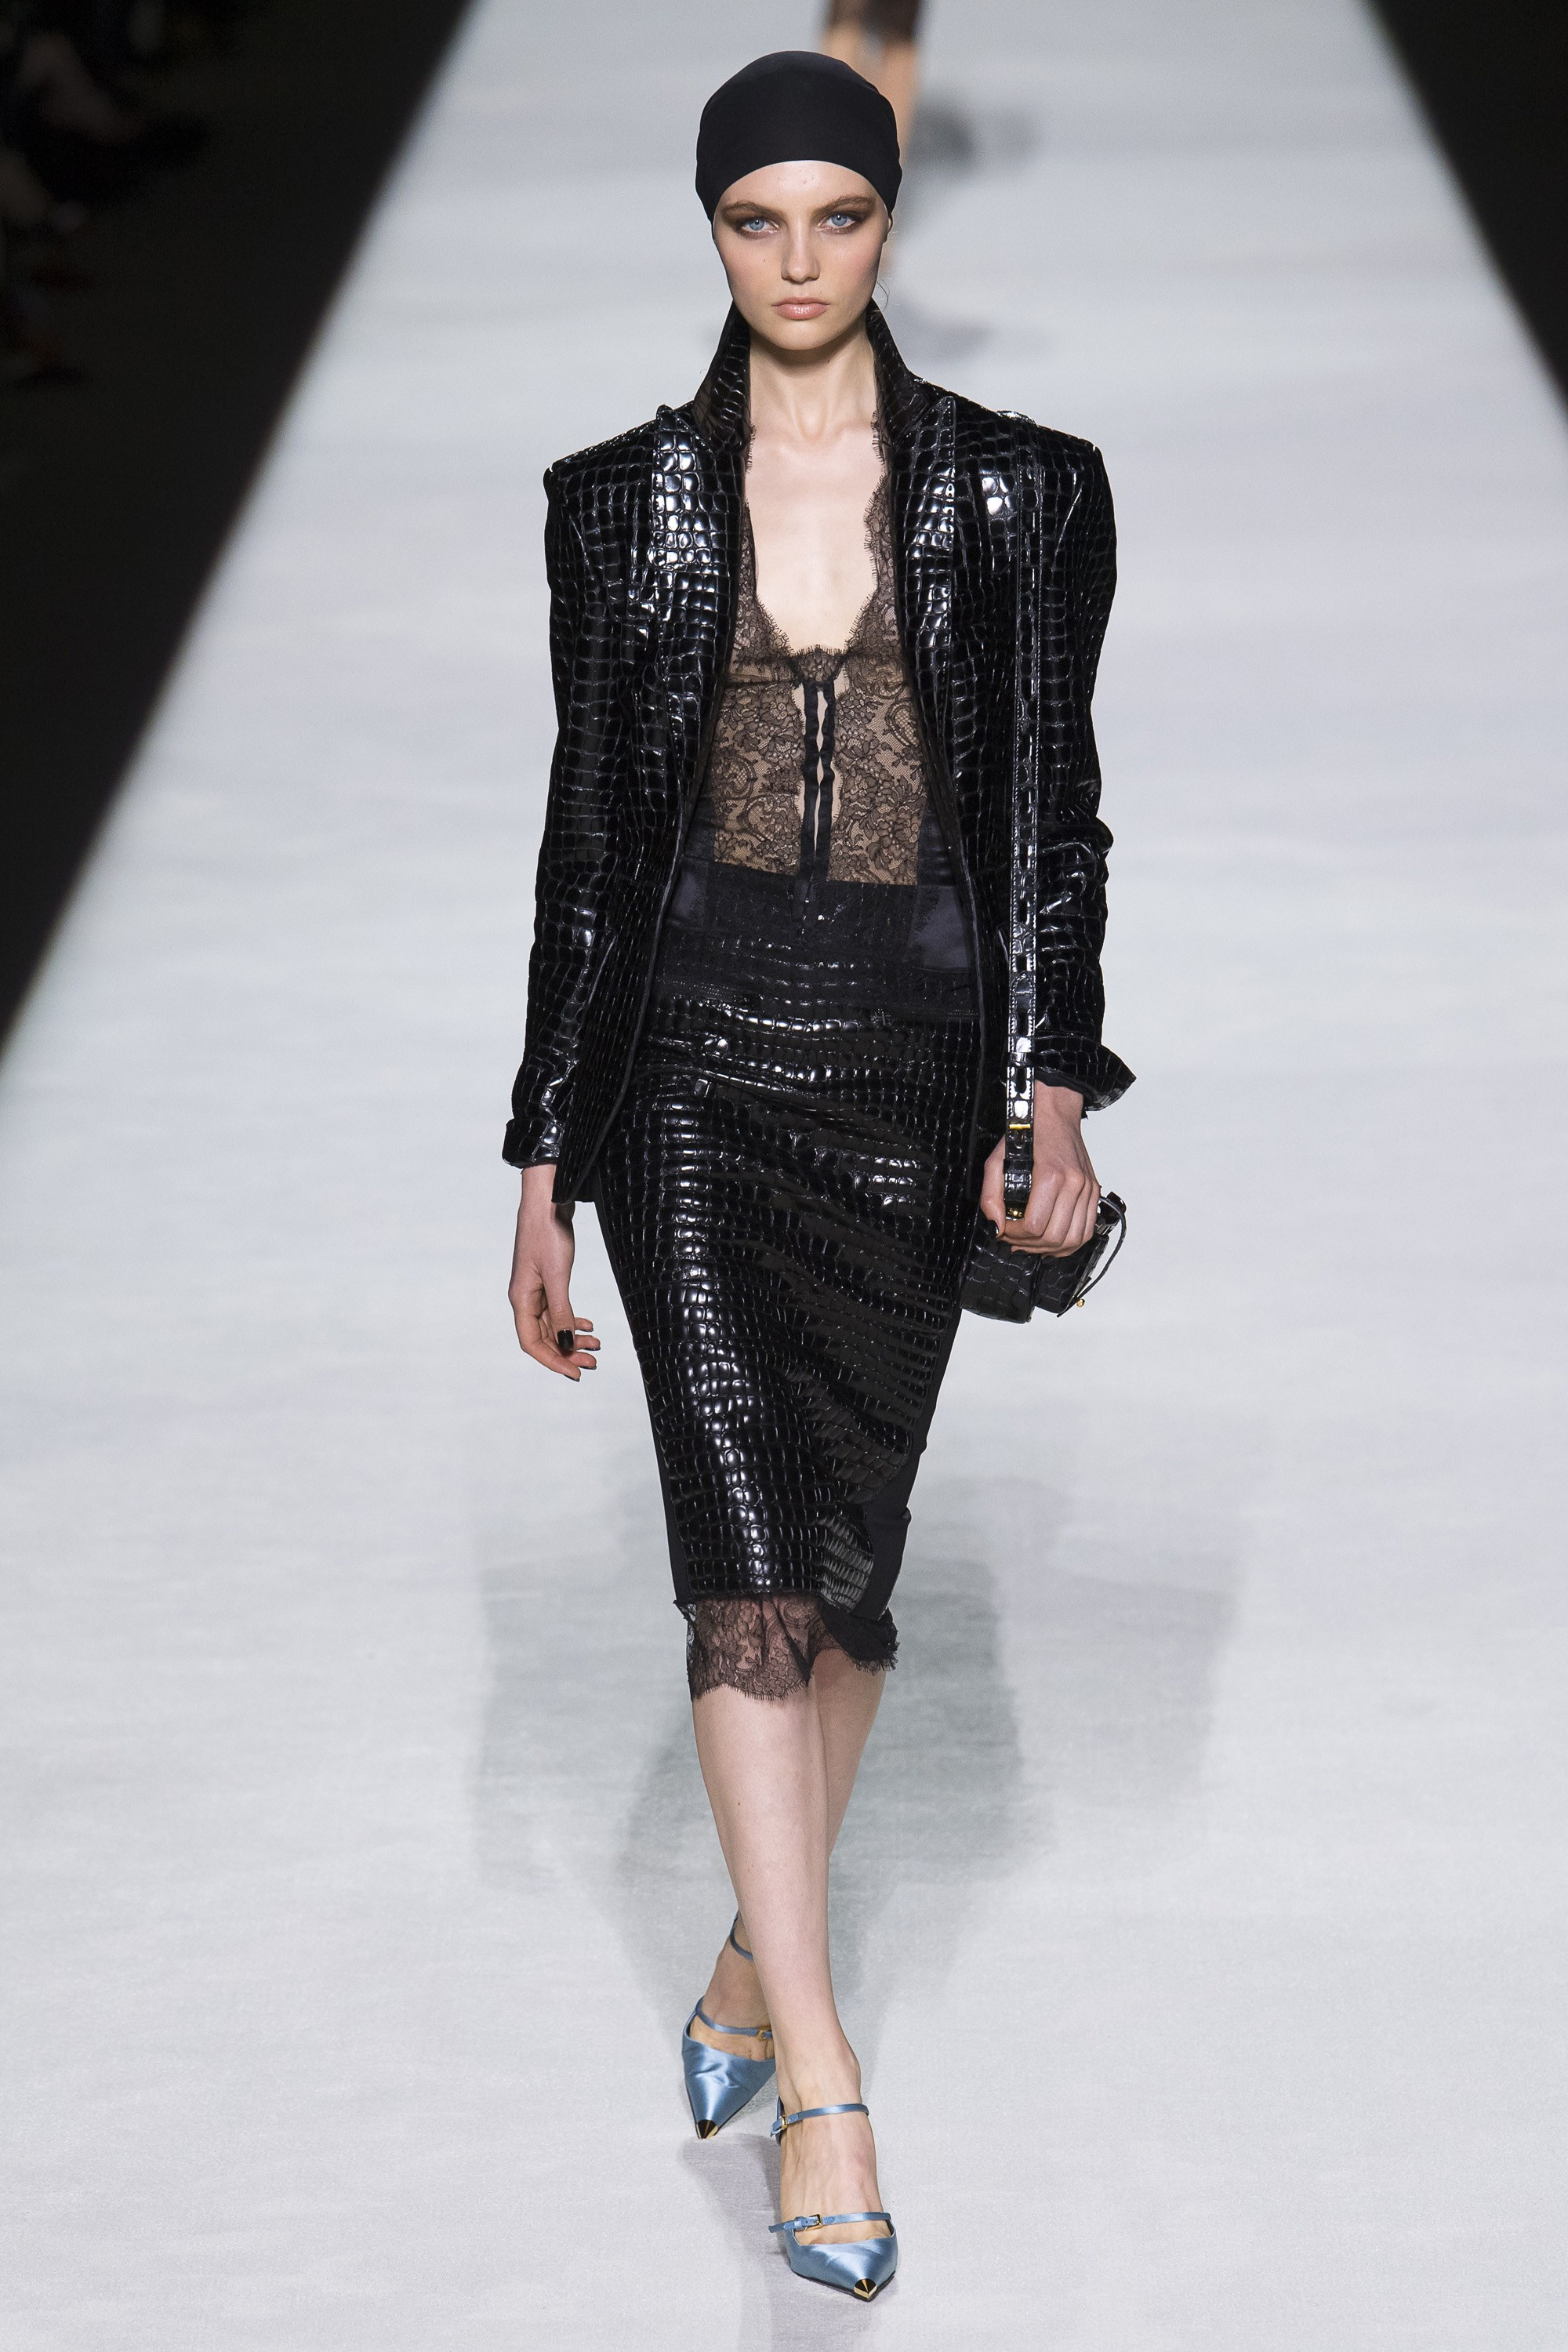 Tom Ford Spring/Summer 2019 Ready To Wear